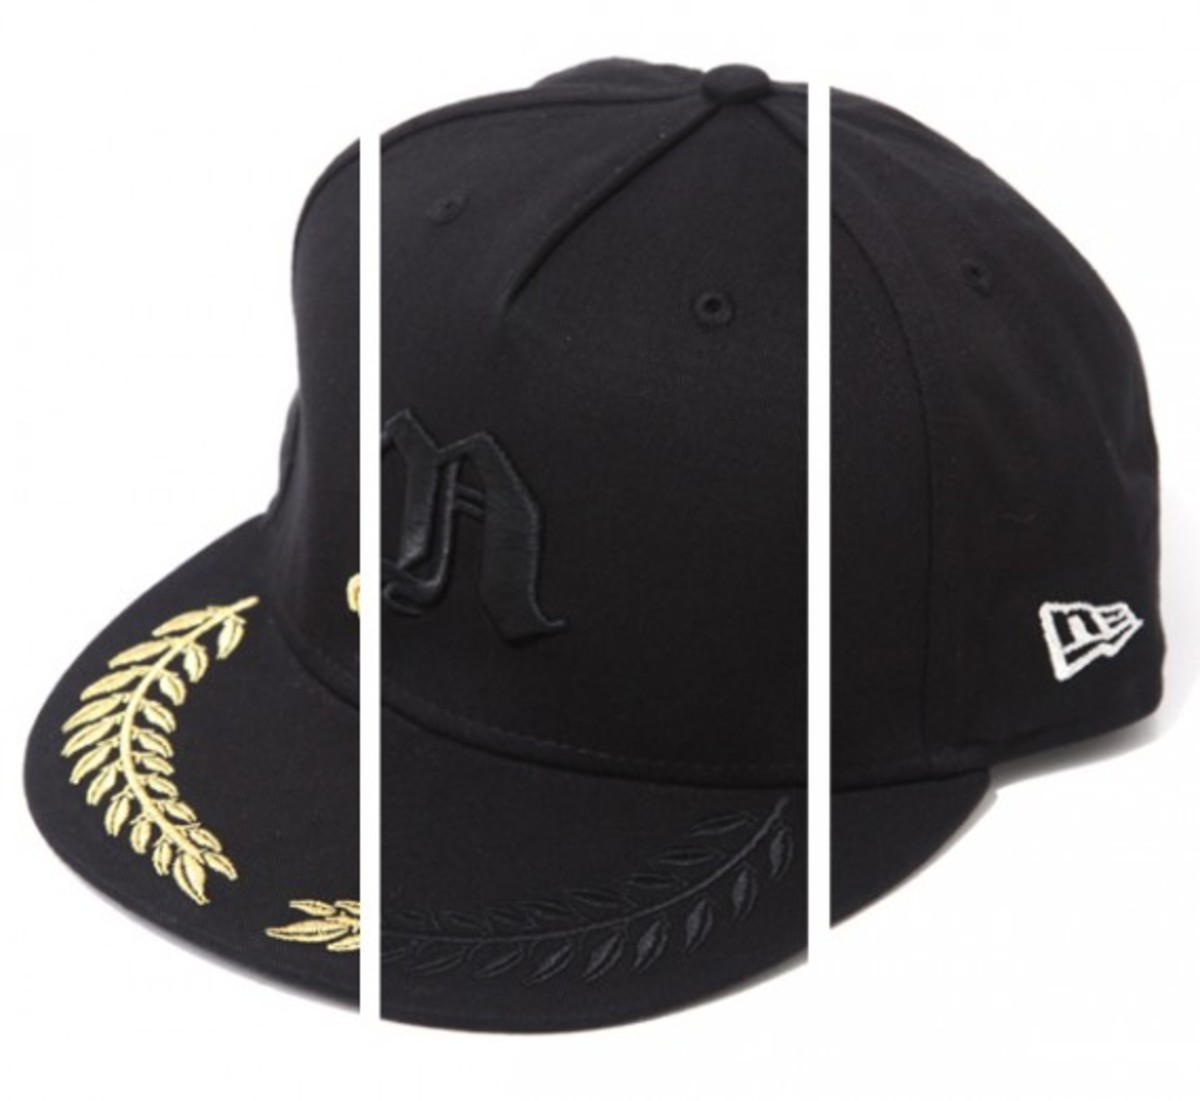 d1dcc1b69a5 NITRAID have deviated from the usual 59FIFTY fitted caps to produce the  military inspired snap back caps. Black wool body is accented by raised N  logo ...